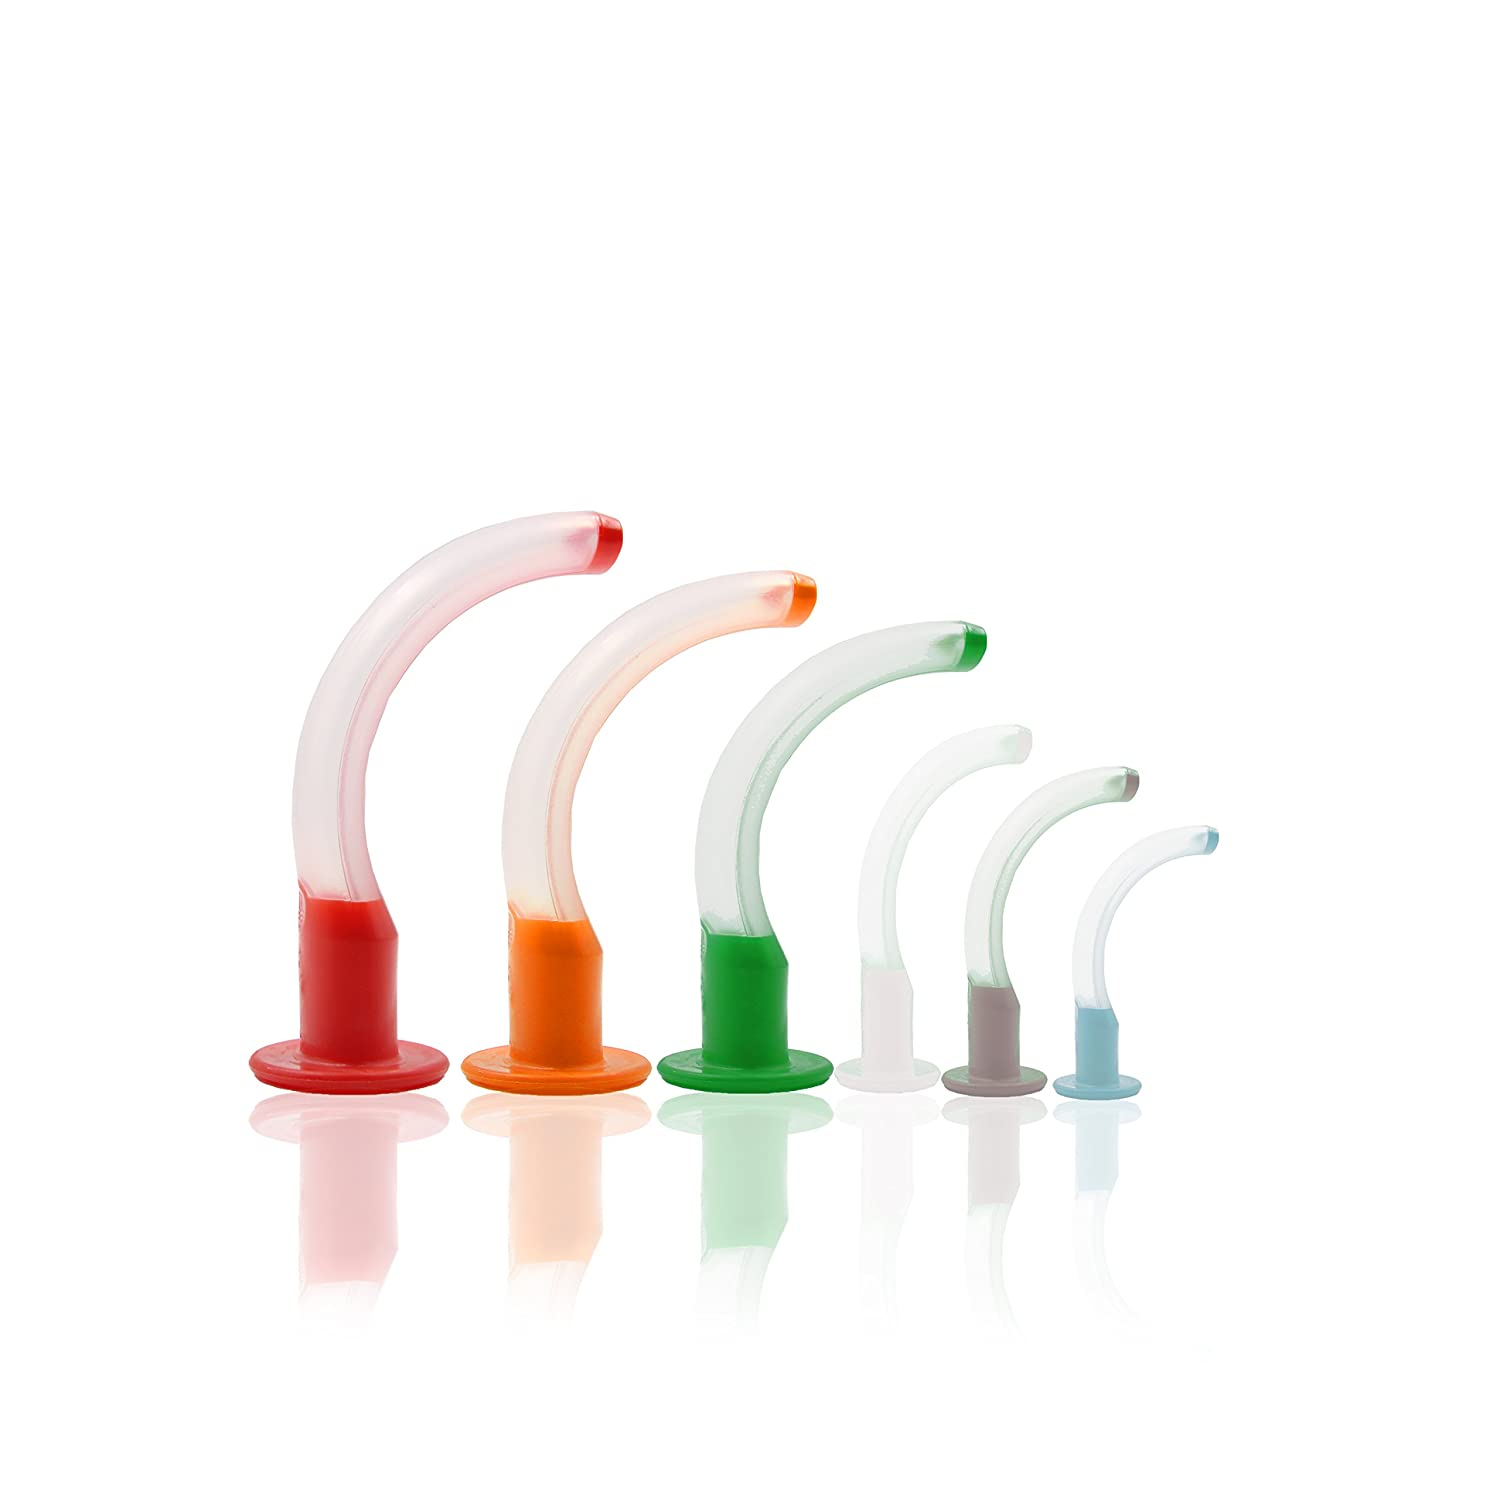 Horn Medical Guedel cannula set con 6 taglie (Guedel cannulas) Rianimazione Primo soccorso Horn Medical Producing & Trading GmbH